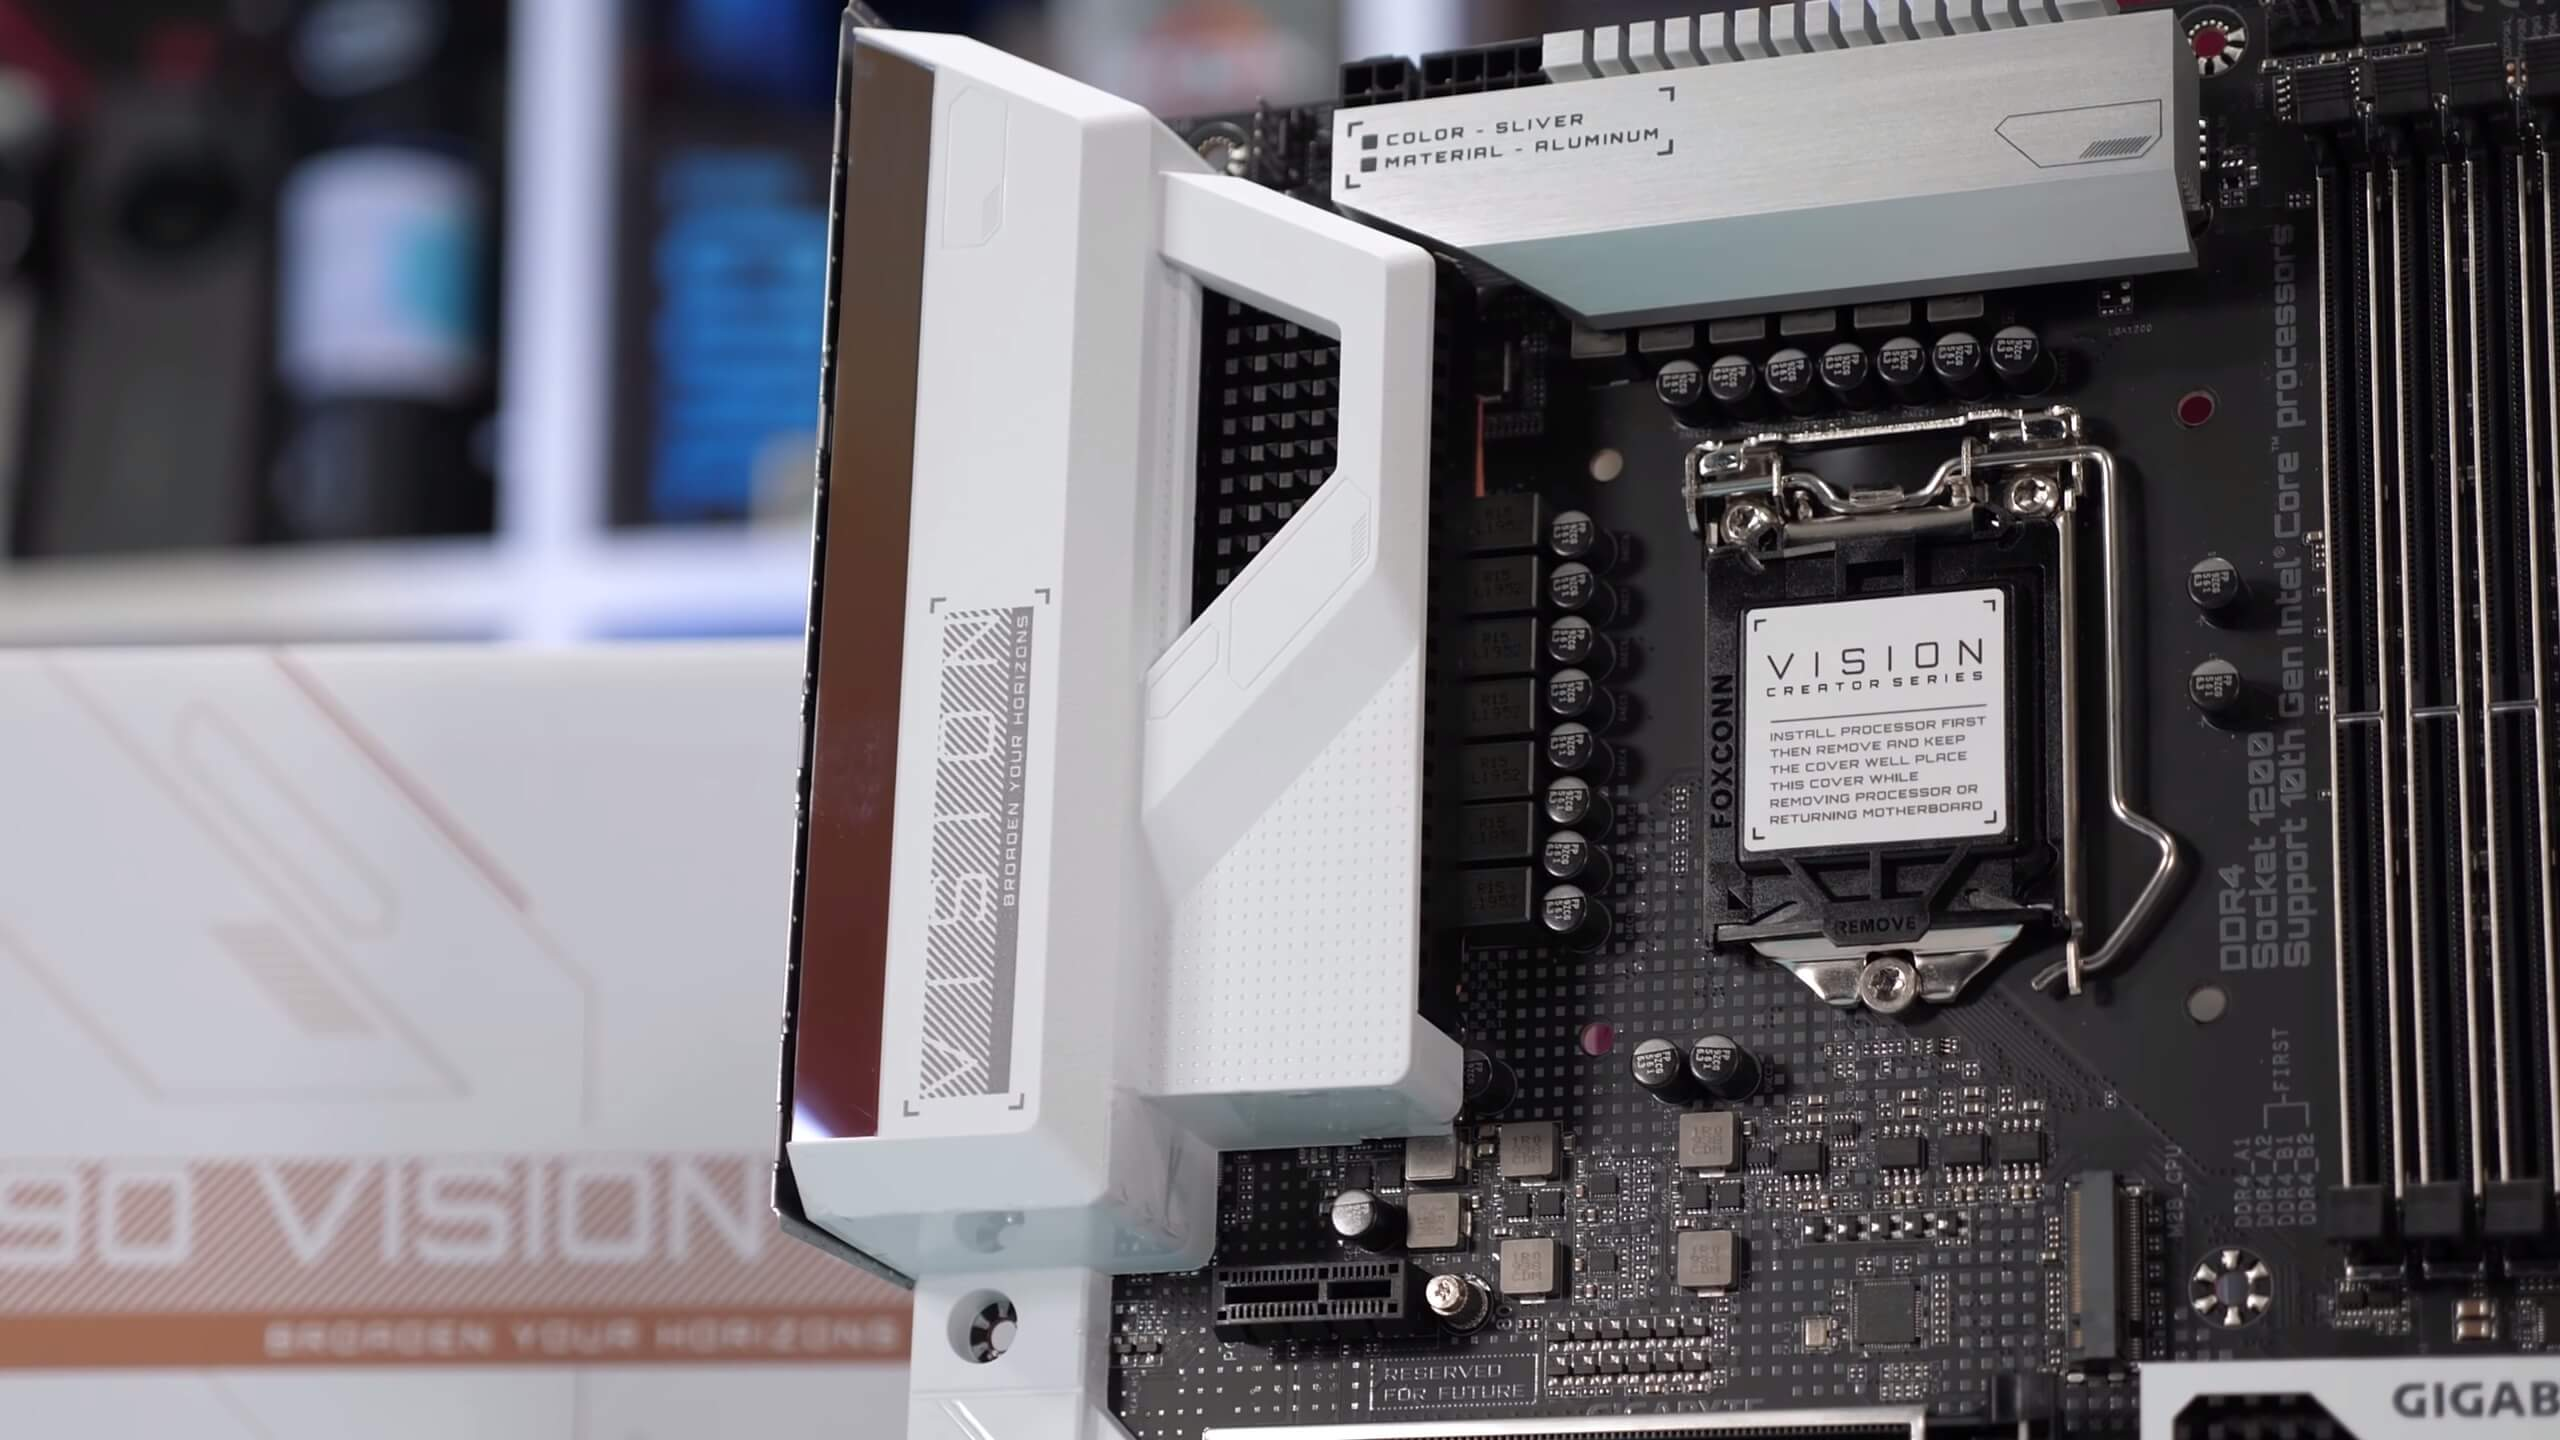 Intel's next-gen processors have fewer cores but cost more, according to retailers